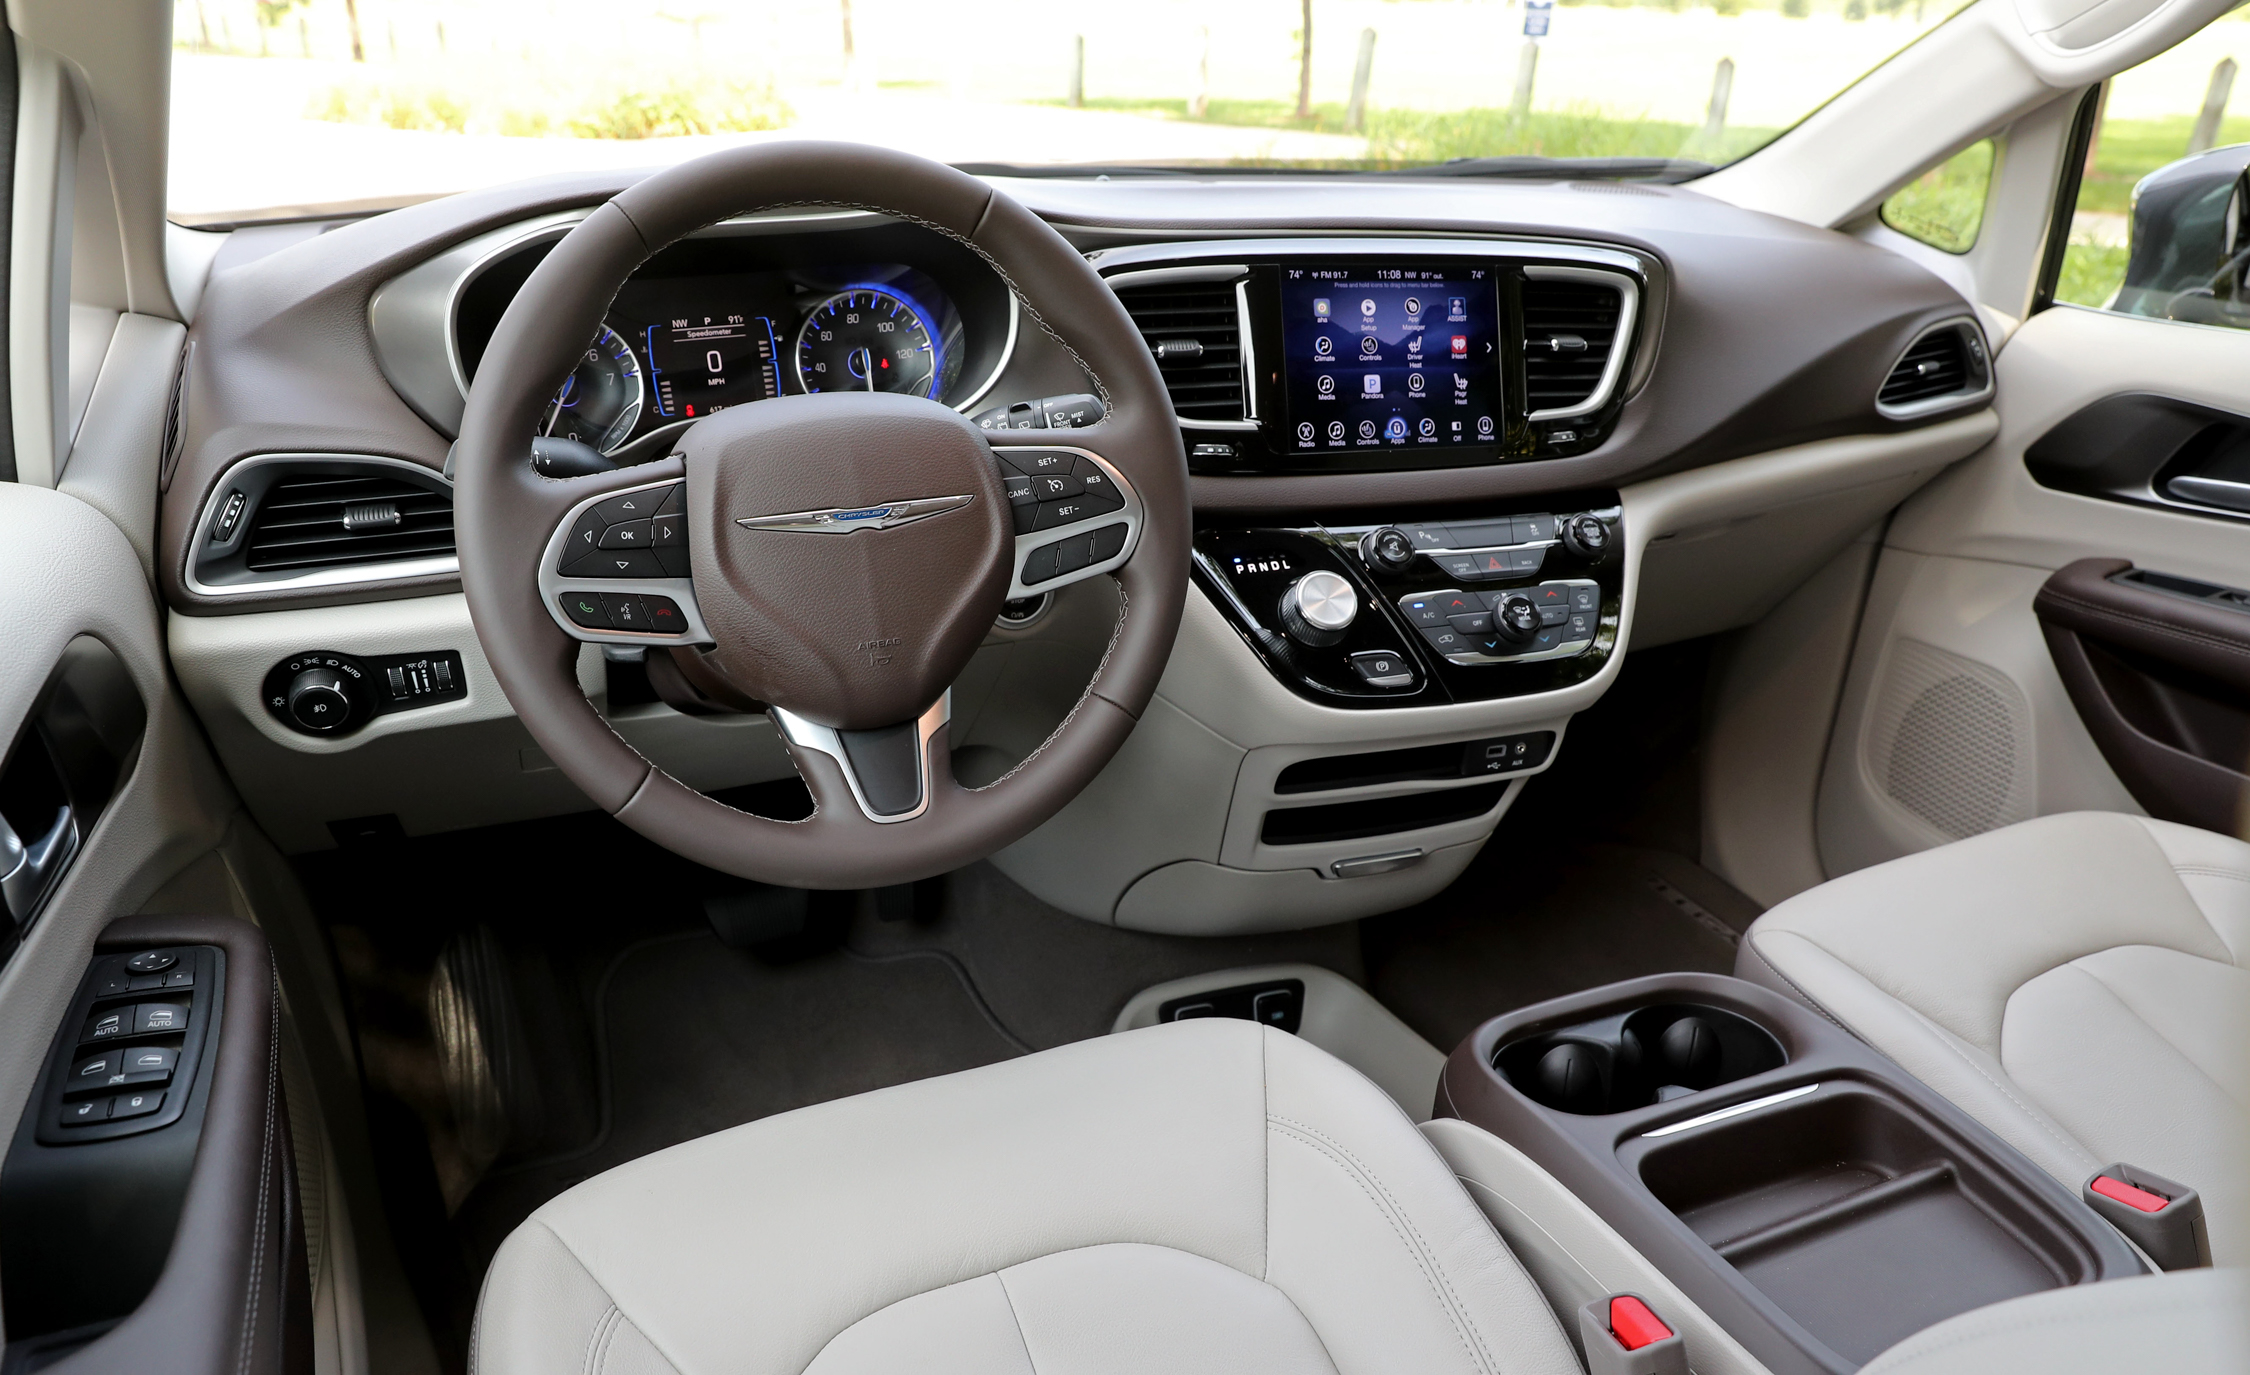 2017 Chrysler Pacifica Cars Exclusive Videos And Photos Updates